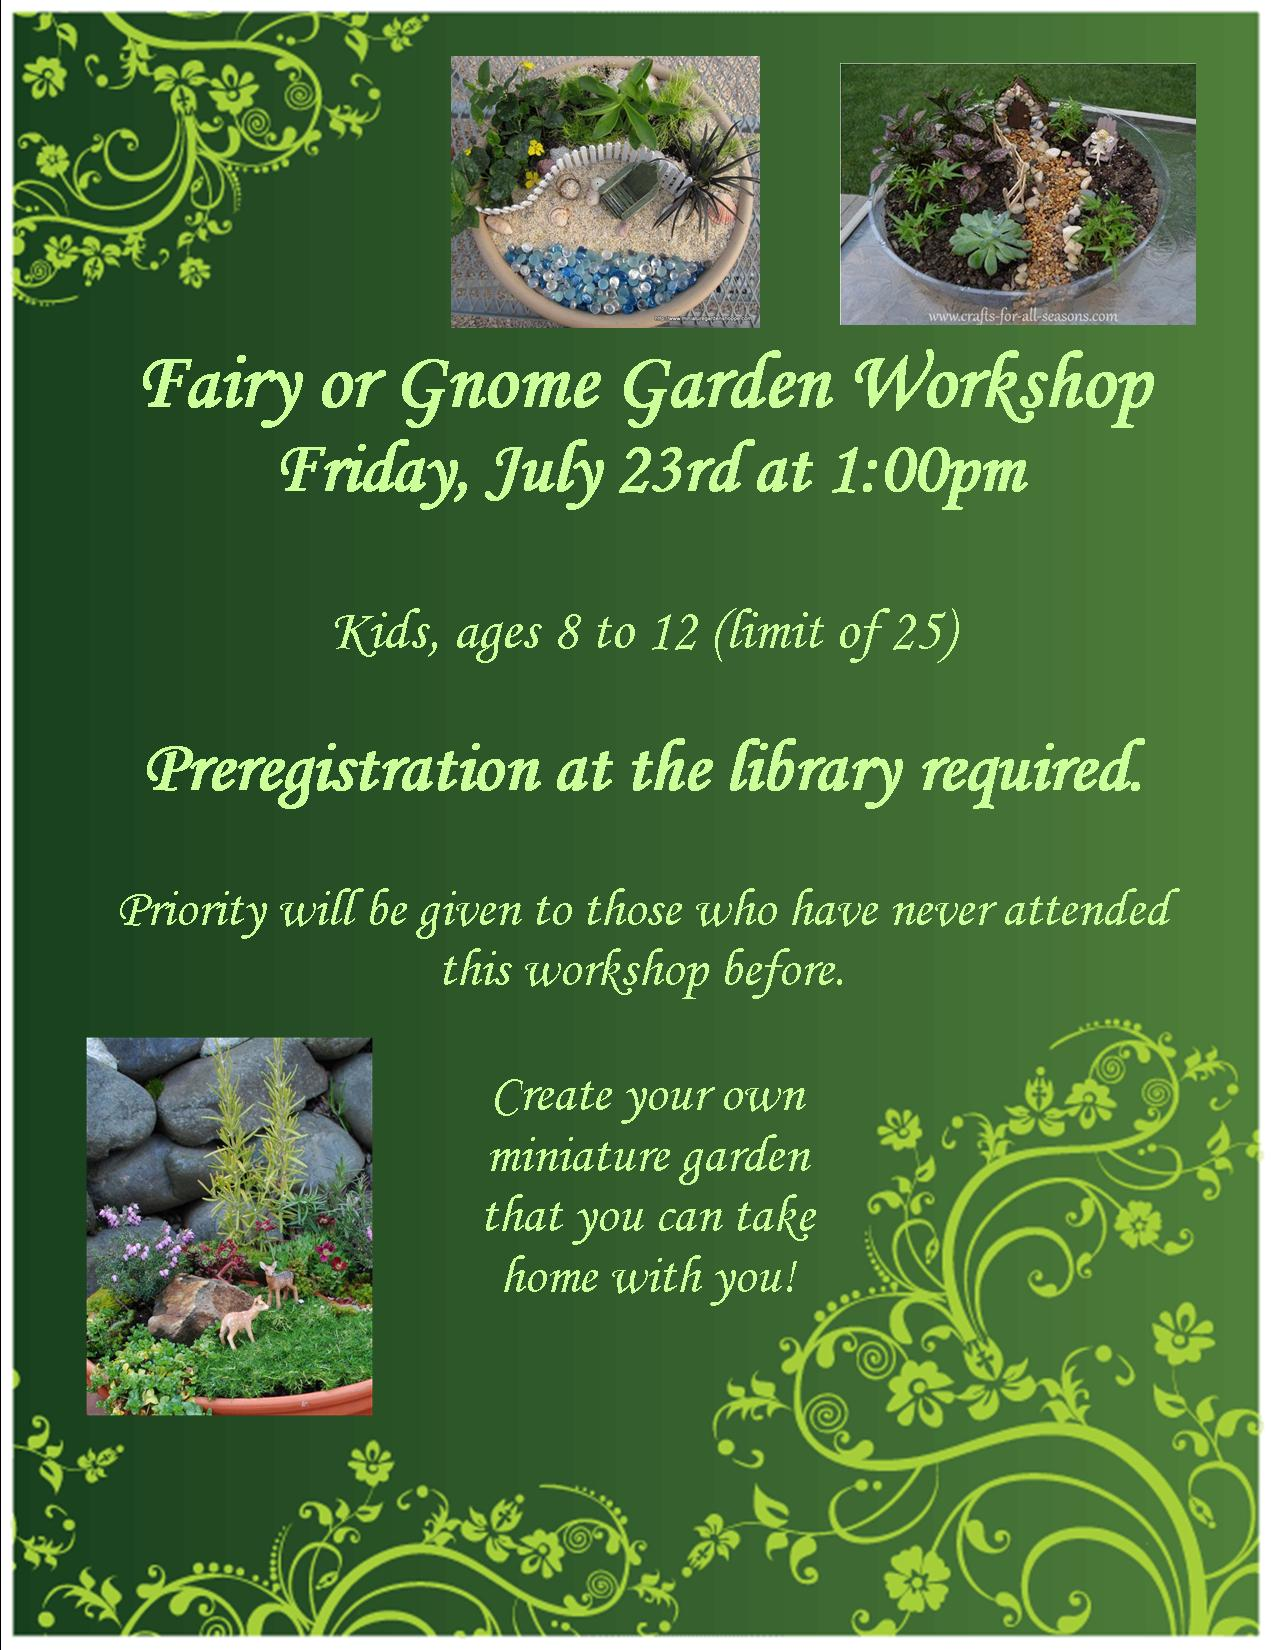 Fairy Garden Workshop at Chatfield Public Library, July 23 at 1pm, registration required